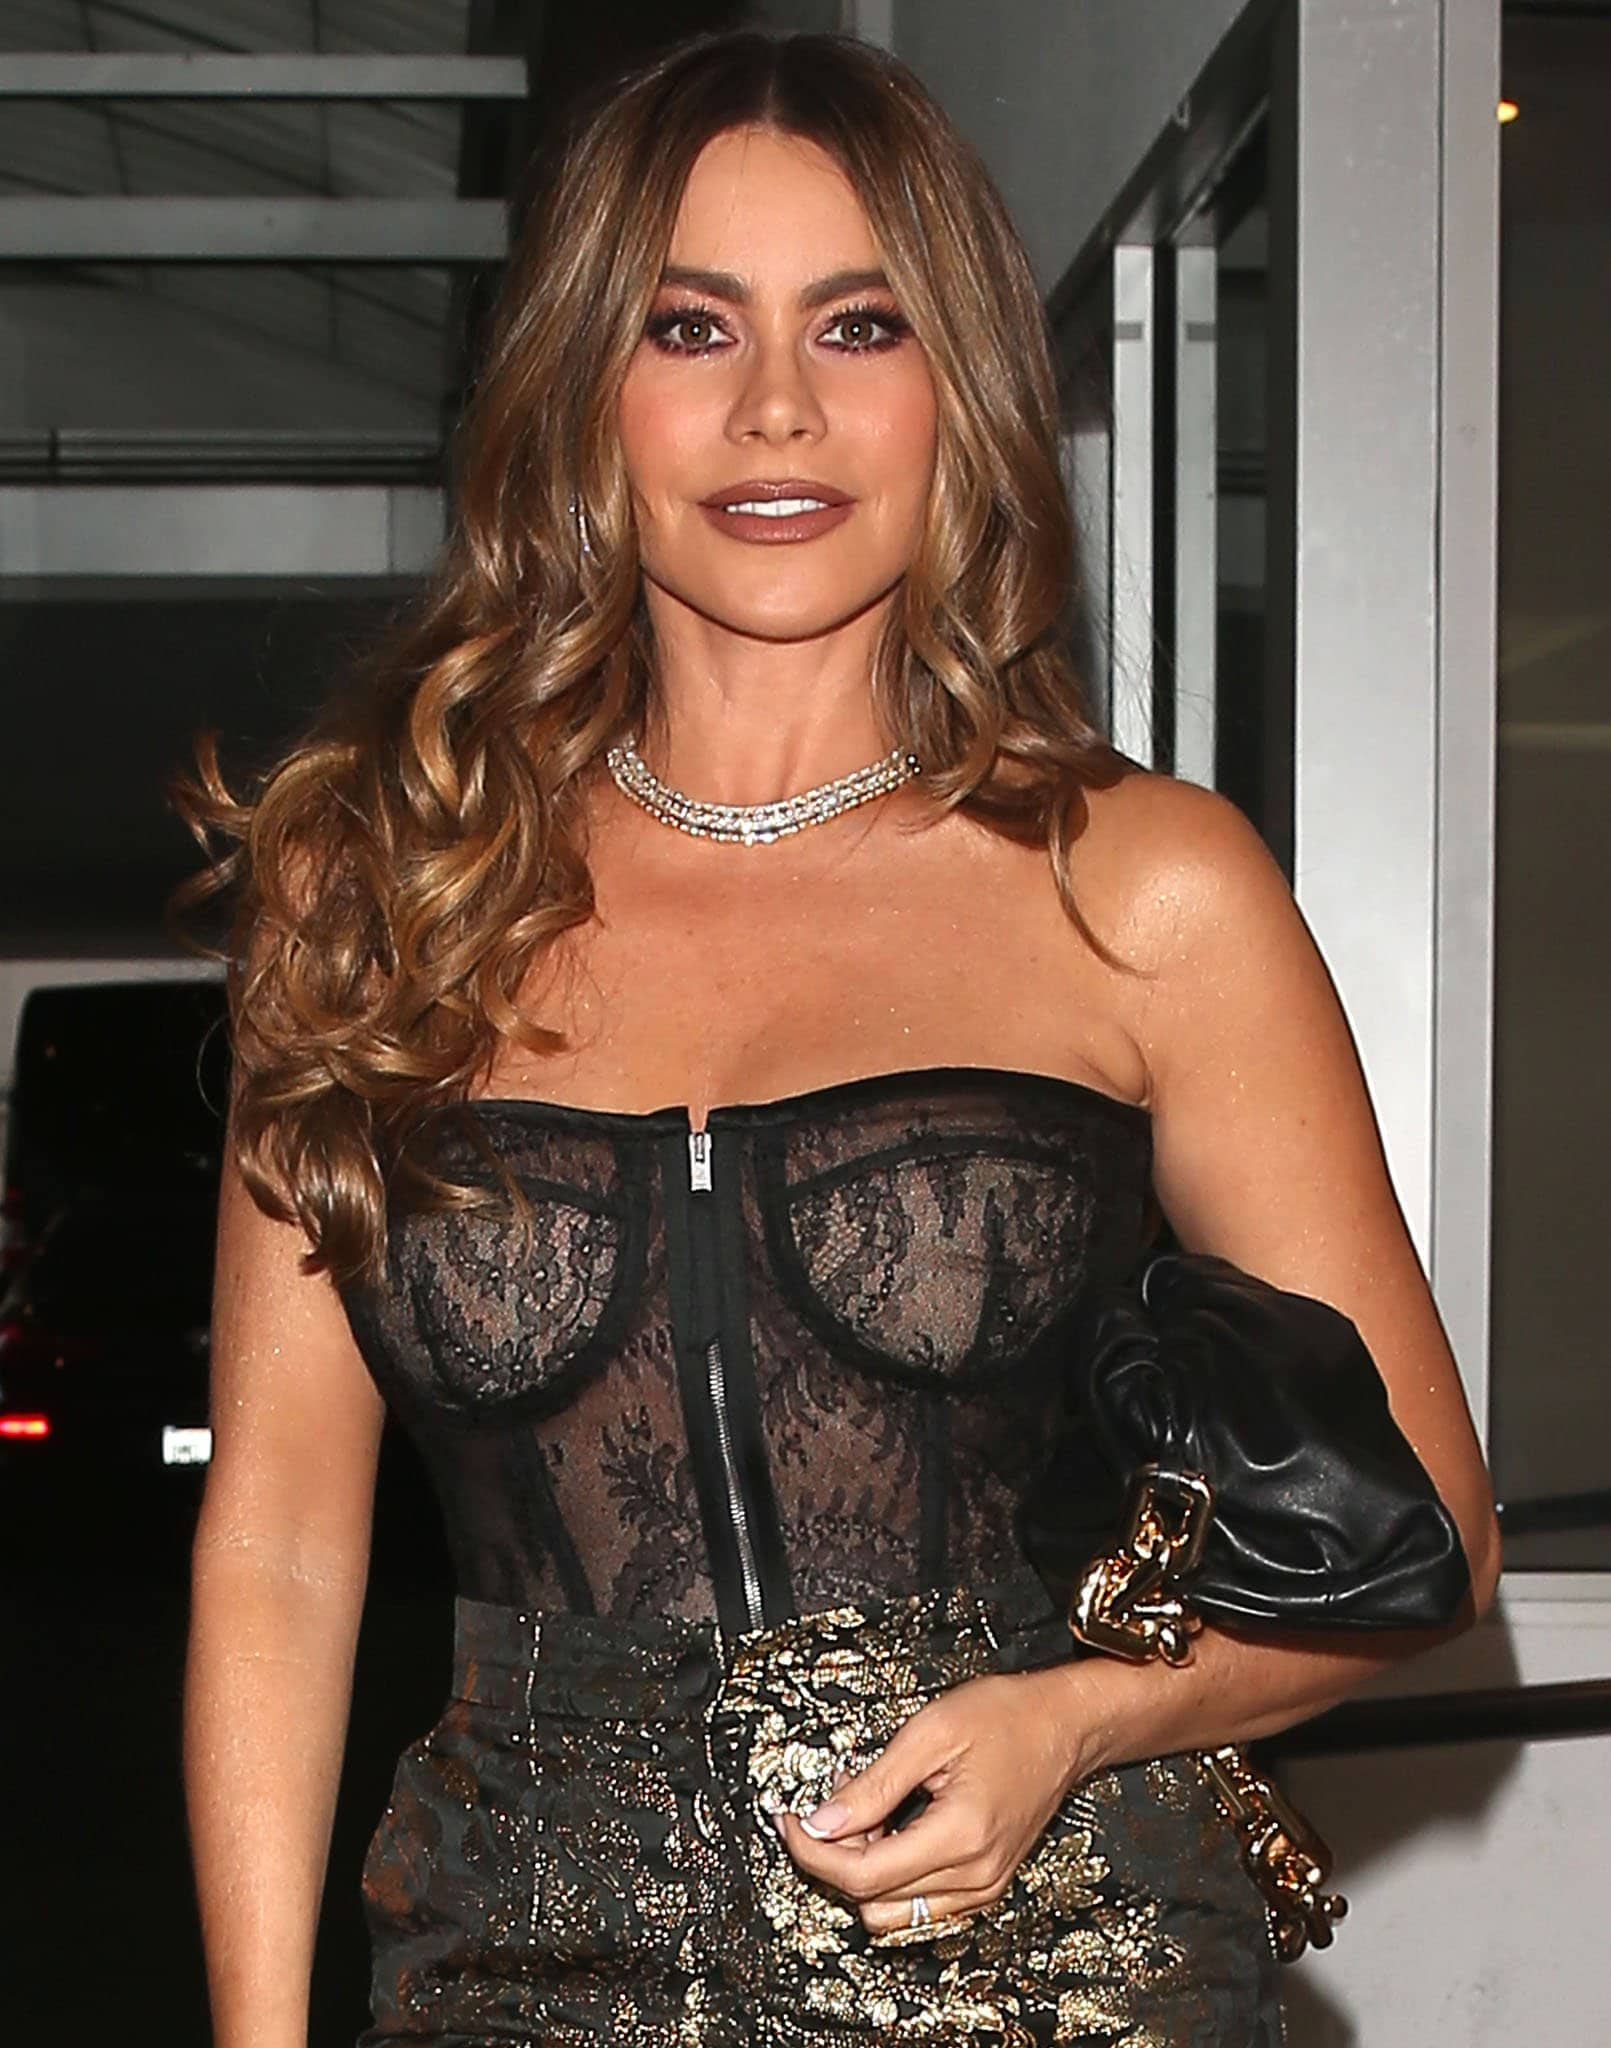 Sofia Vergara styles her hair in glossy soft curls and wears brown lipstick and copper eye-makeup